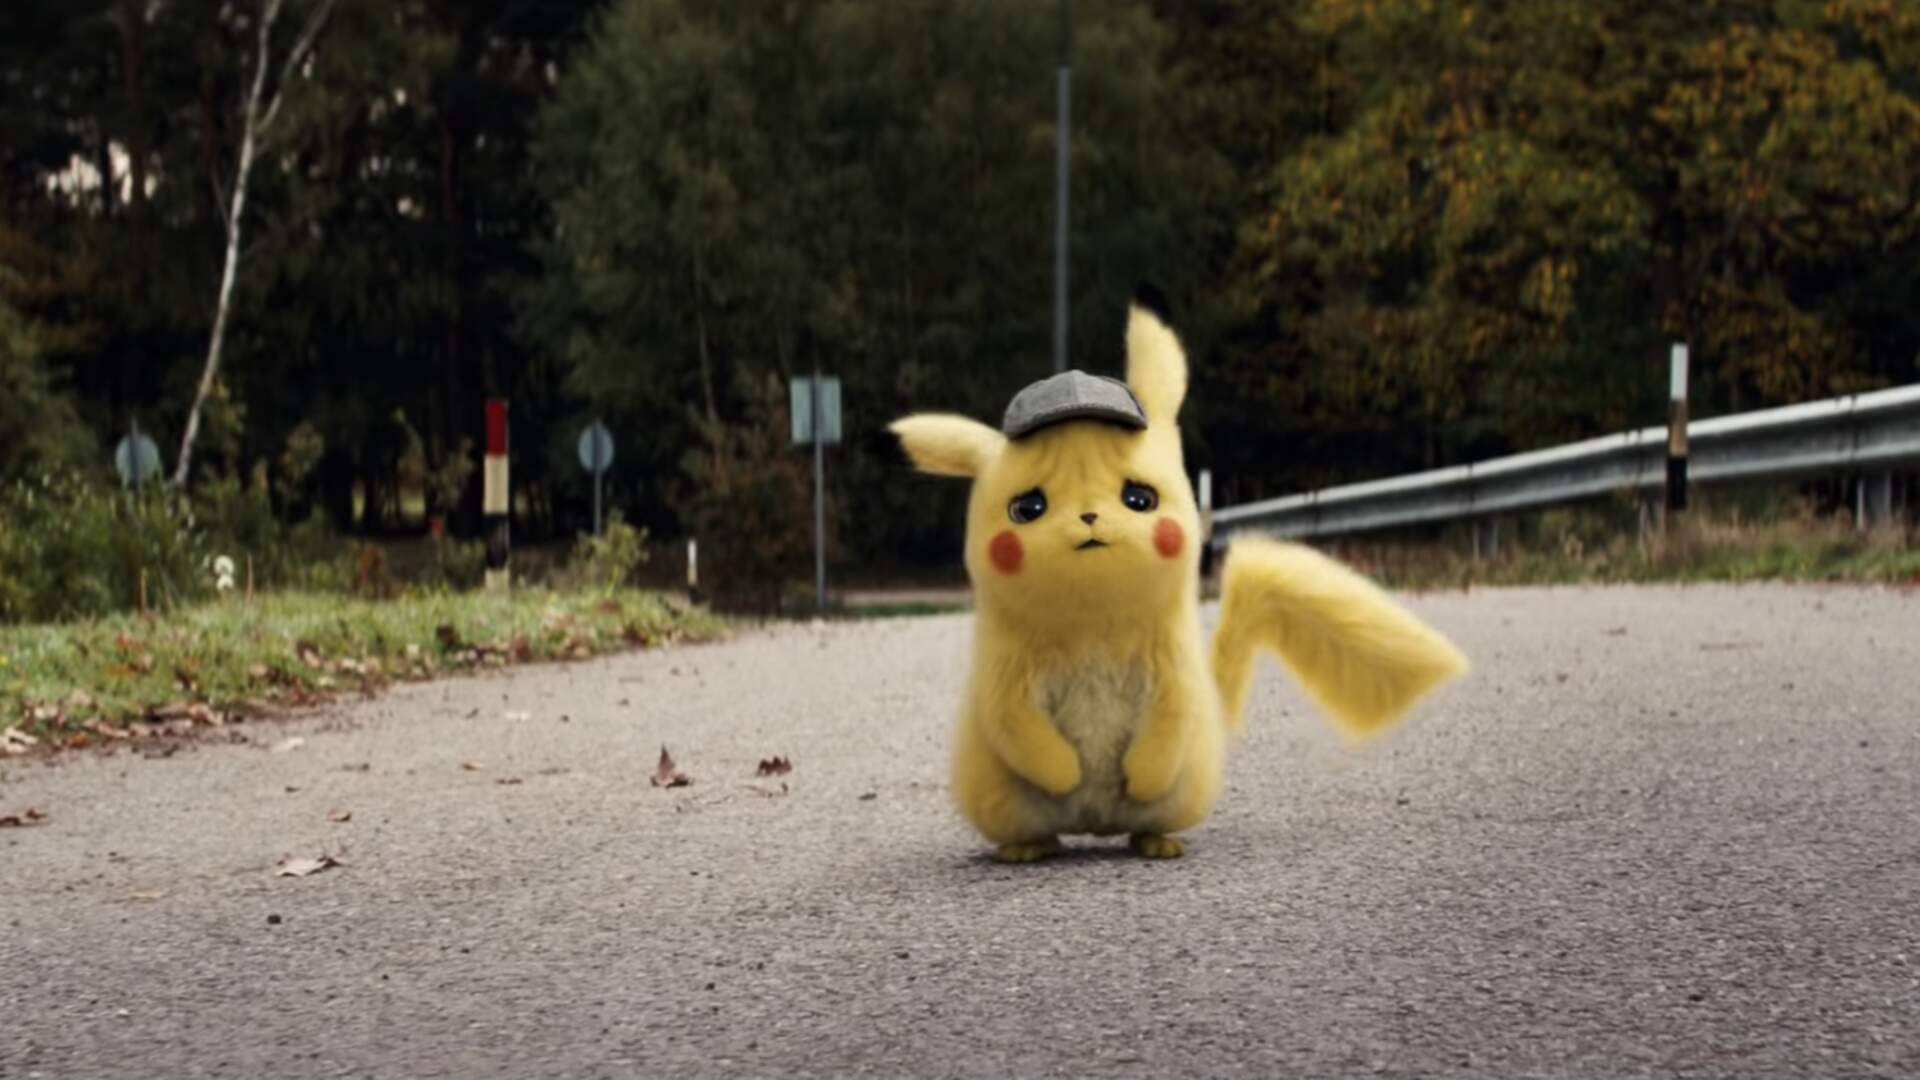 Detective Pikachu is on Track to be the Highest Grossing Video Game Movie Ever, But It Might Not Be Enough